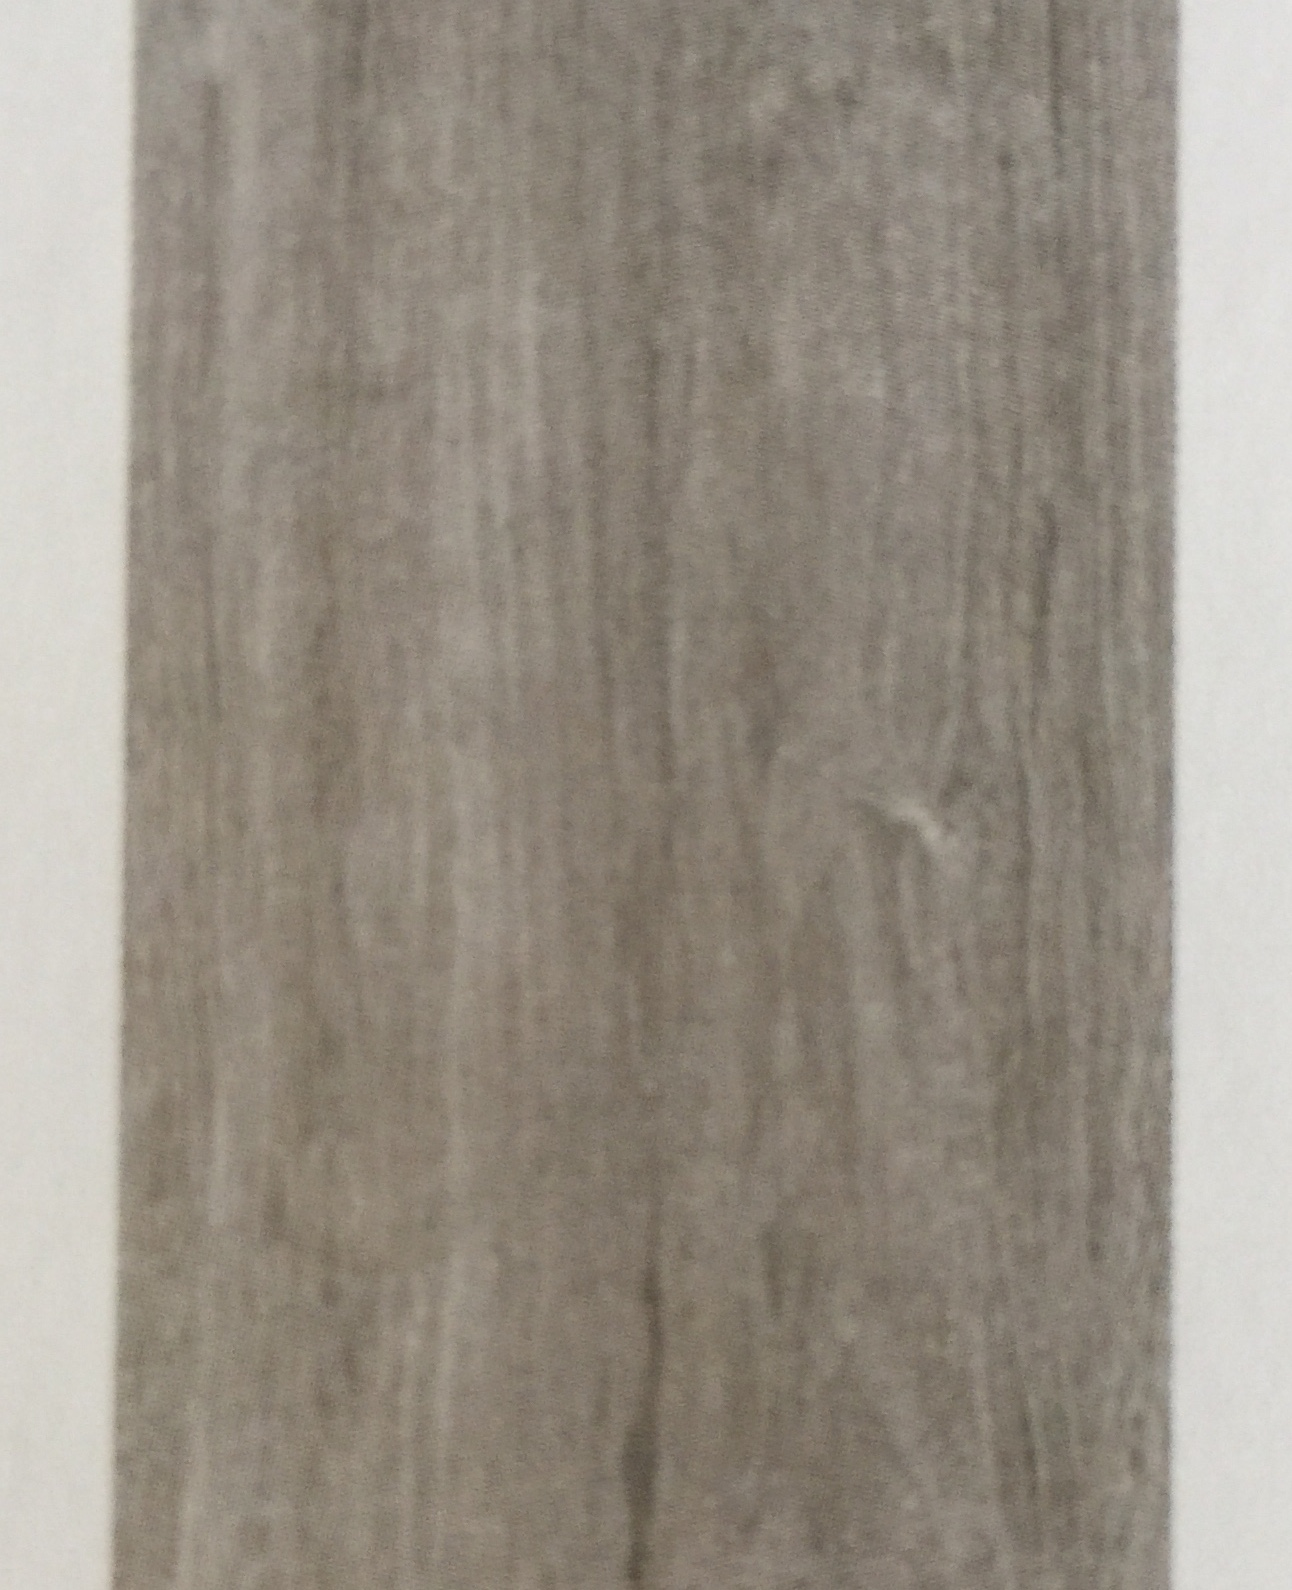 Rak Ceramics Circle Wood 195mm X 1200mm Grey A99gzcrw Gy0w2s9r